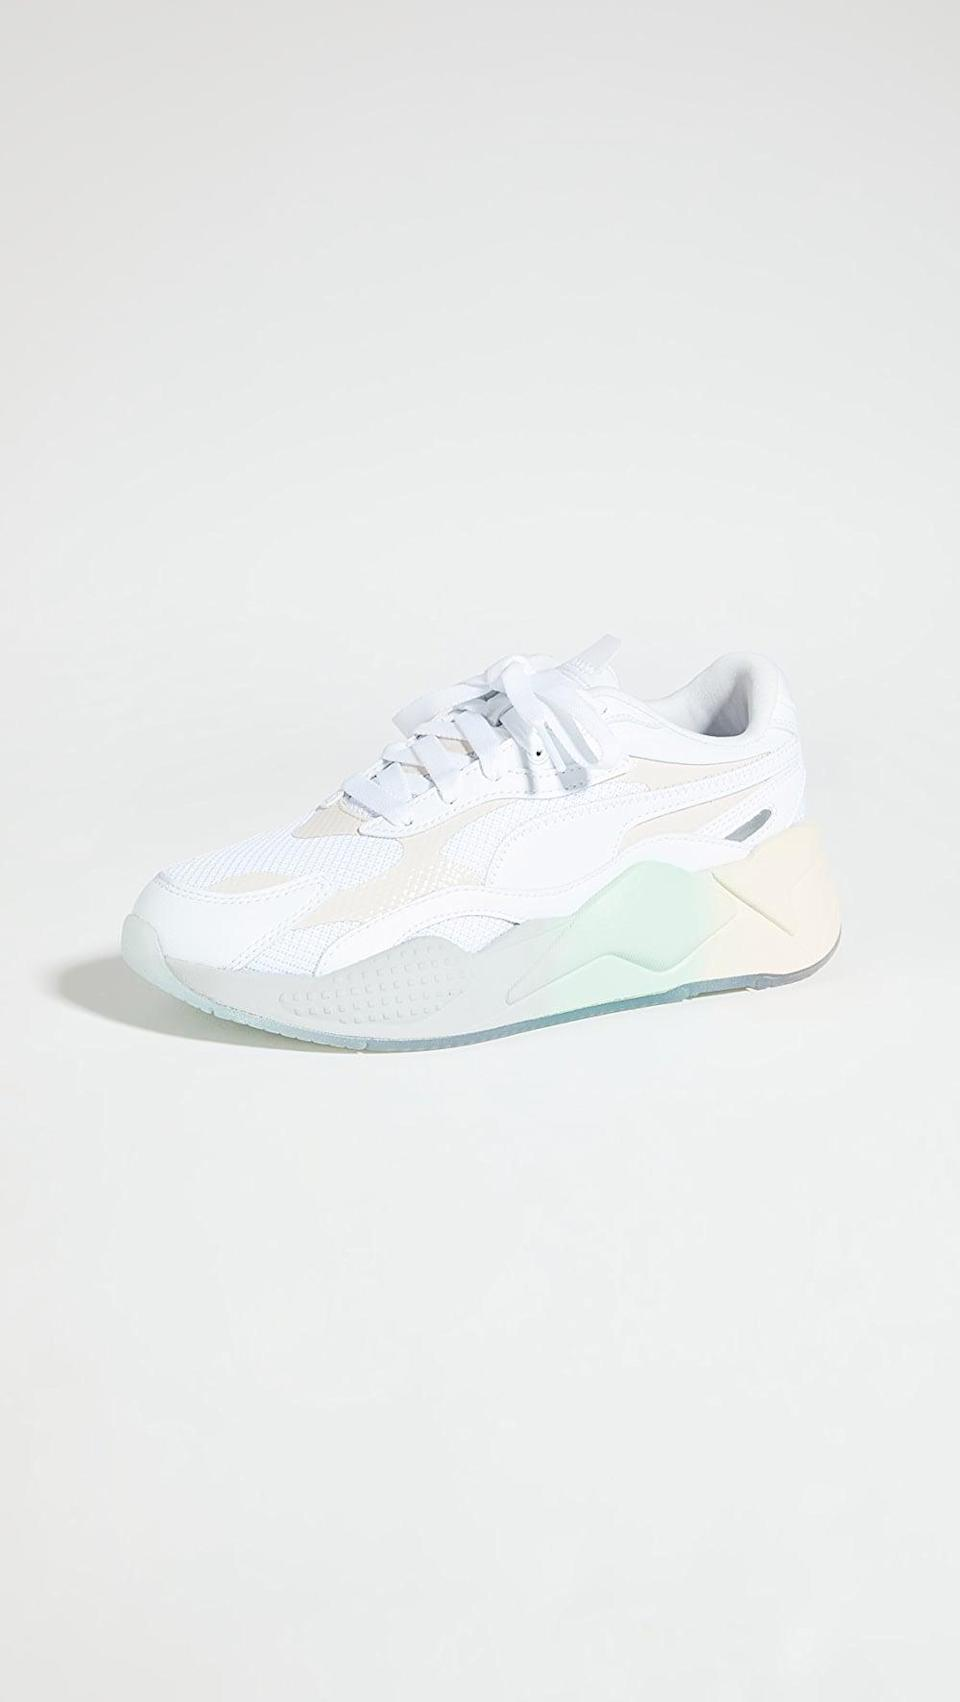 "<p>We're so into the ombre on the bottom of these <a href=""https://www.popsugar.com/buy/PUMA-RS-X-Gradient-Sneakers-568283?p_name=PUMA%20RS-X%20Gradient%20Sneakers&retailer=shopbop.com&pid=568283&price=110&evar1=fit%3Aus&evar9=45192674&evar98=https%3A%2F%2Fwww.popsugar.com%2Ffitness%2Fphoto-gallery%2F45192674%2Fimage%2F47420178%2FPUMA-RS-X-Gradient-Sneakers&list1=shopping%2Cshoes%2Csneakers%2Cnike%2Cadidas%2Crunning%20shoes%2Cworkouts%2Capl%2Cfitness%20shopping&prop13=api&pdata=1"" class=""link rapid-noclick-resp"" rel=""nofollow noopener"" target=""_blank"" data-ylk=""slk:PUMA RS-X Gradient Sneakers"">PUMA RS-X Gradient Sneakers</a> ($110).</p>"